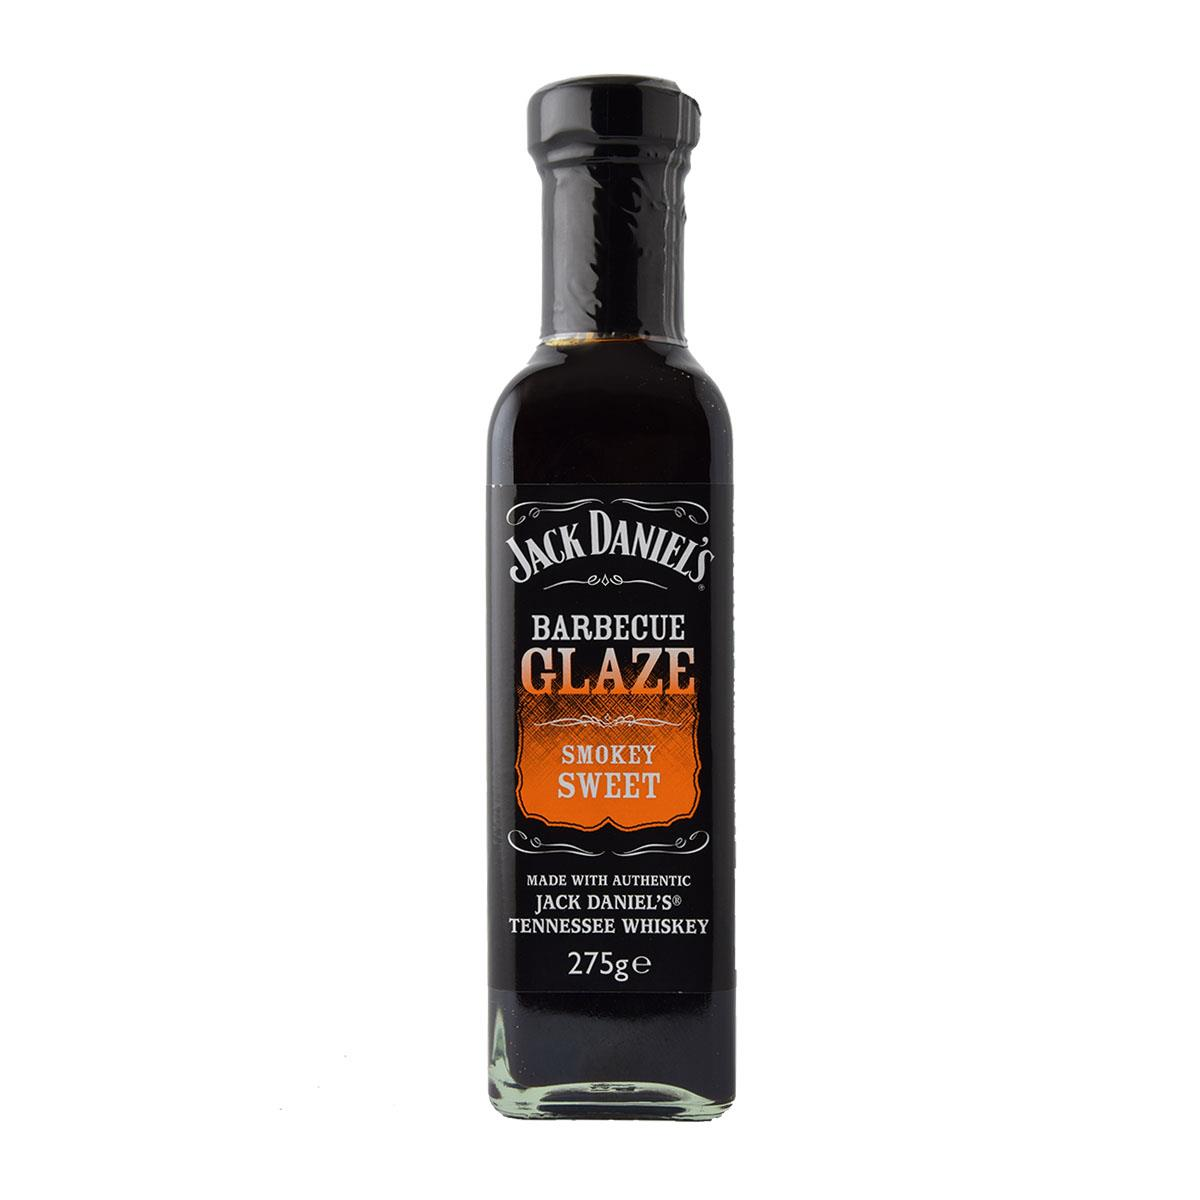 Jack Daniels Barbecue Glaze Smokey Sweet 275ml